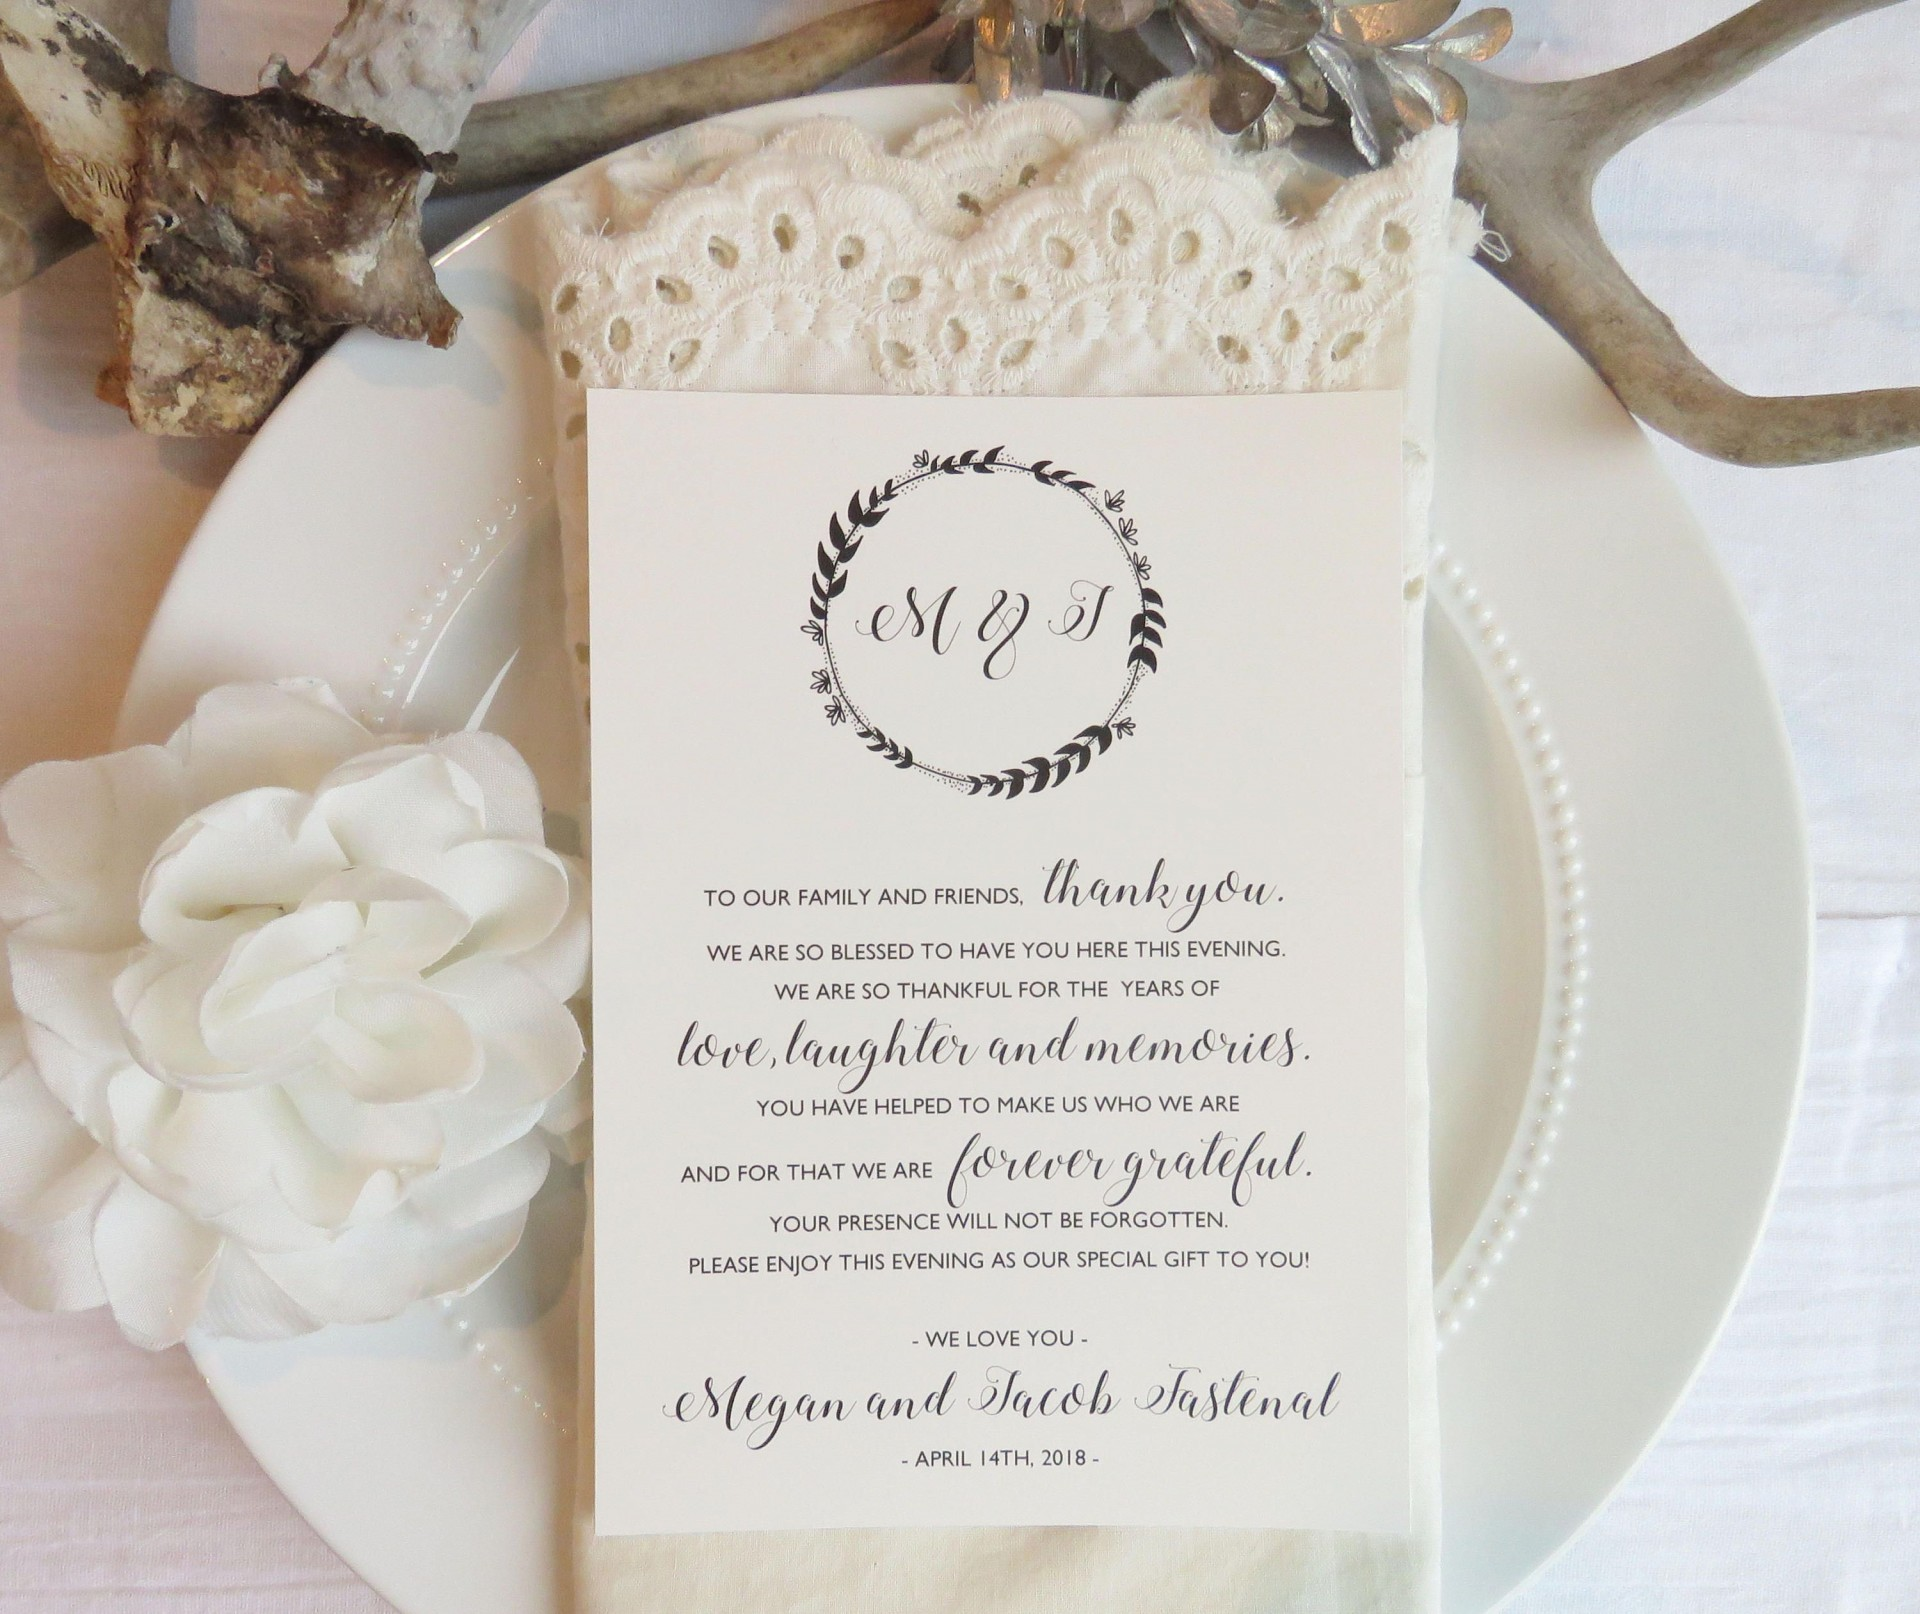 001 Staggering Thank You Note Template Wedding Sample  Card Etsy Wording1920